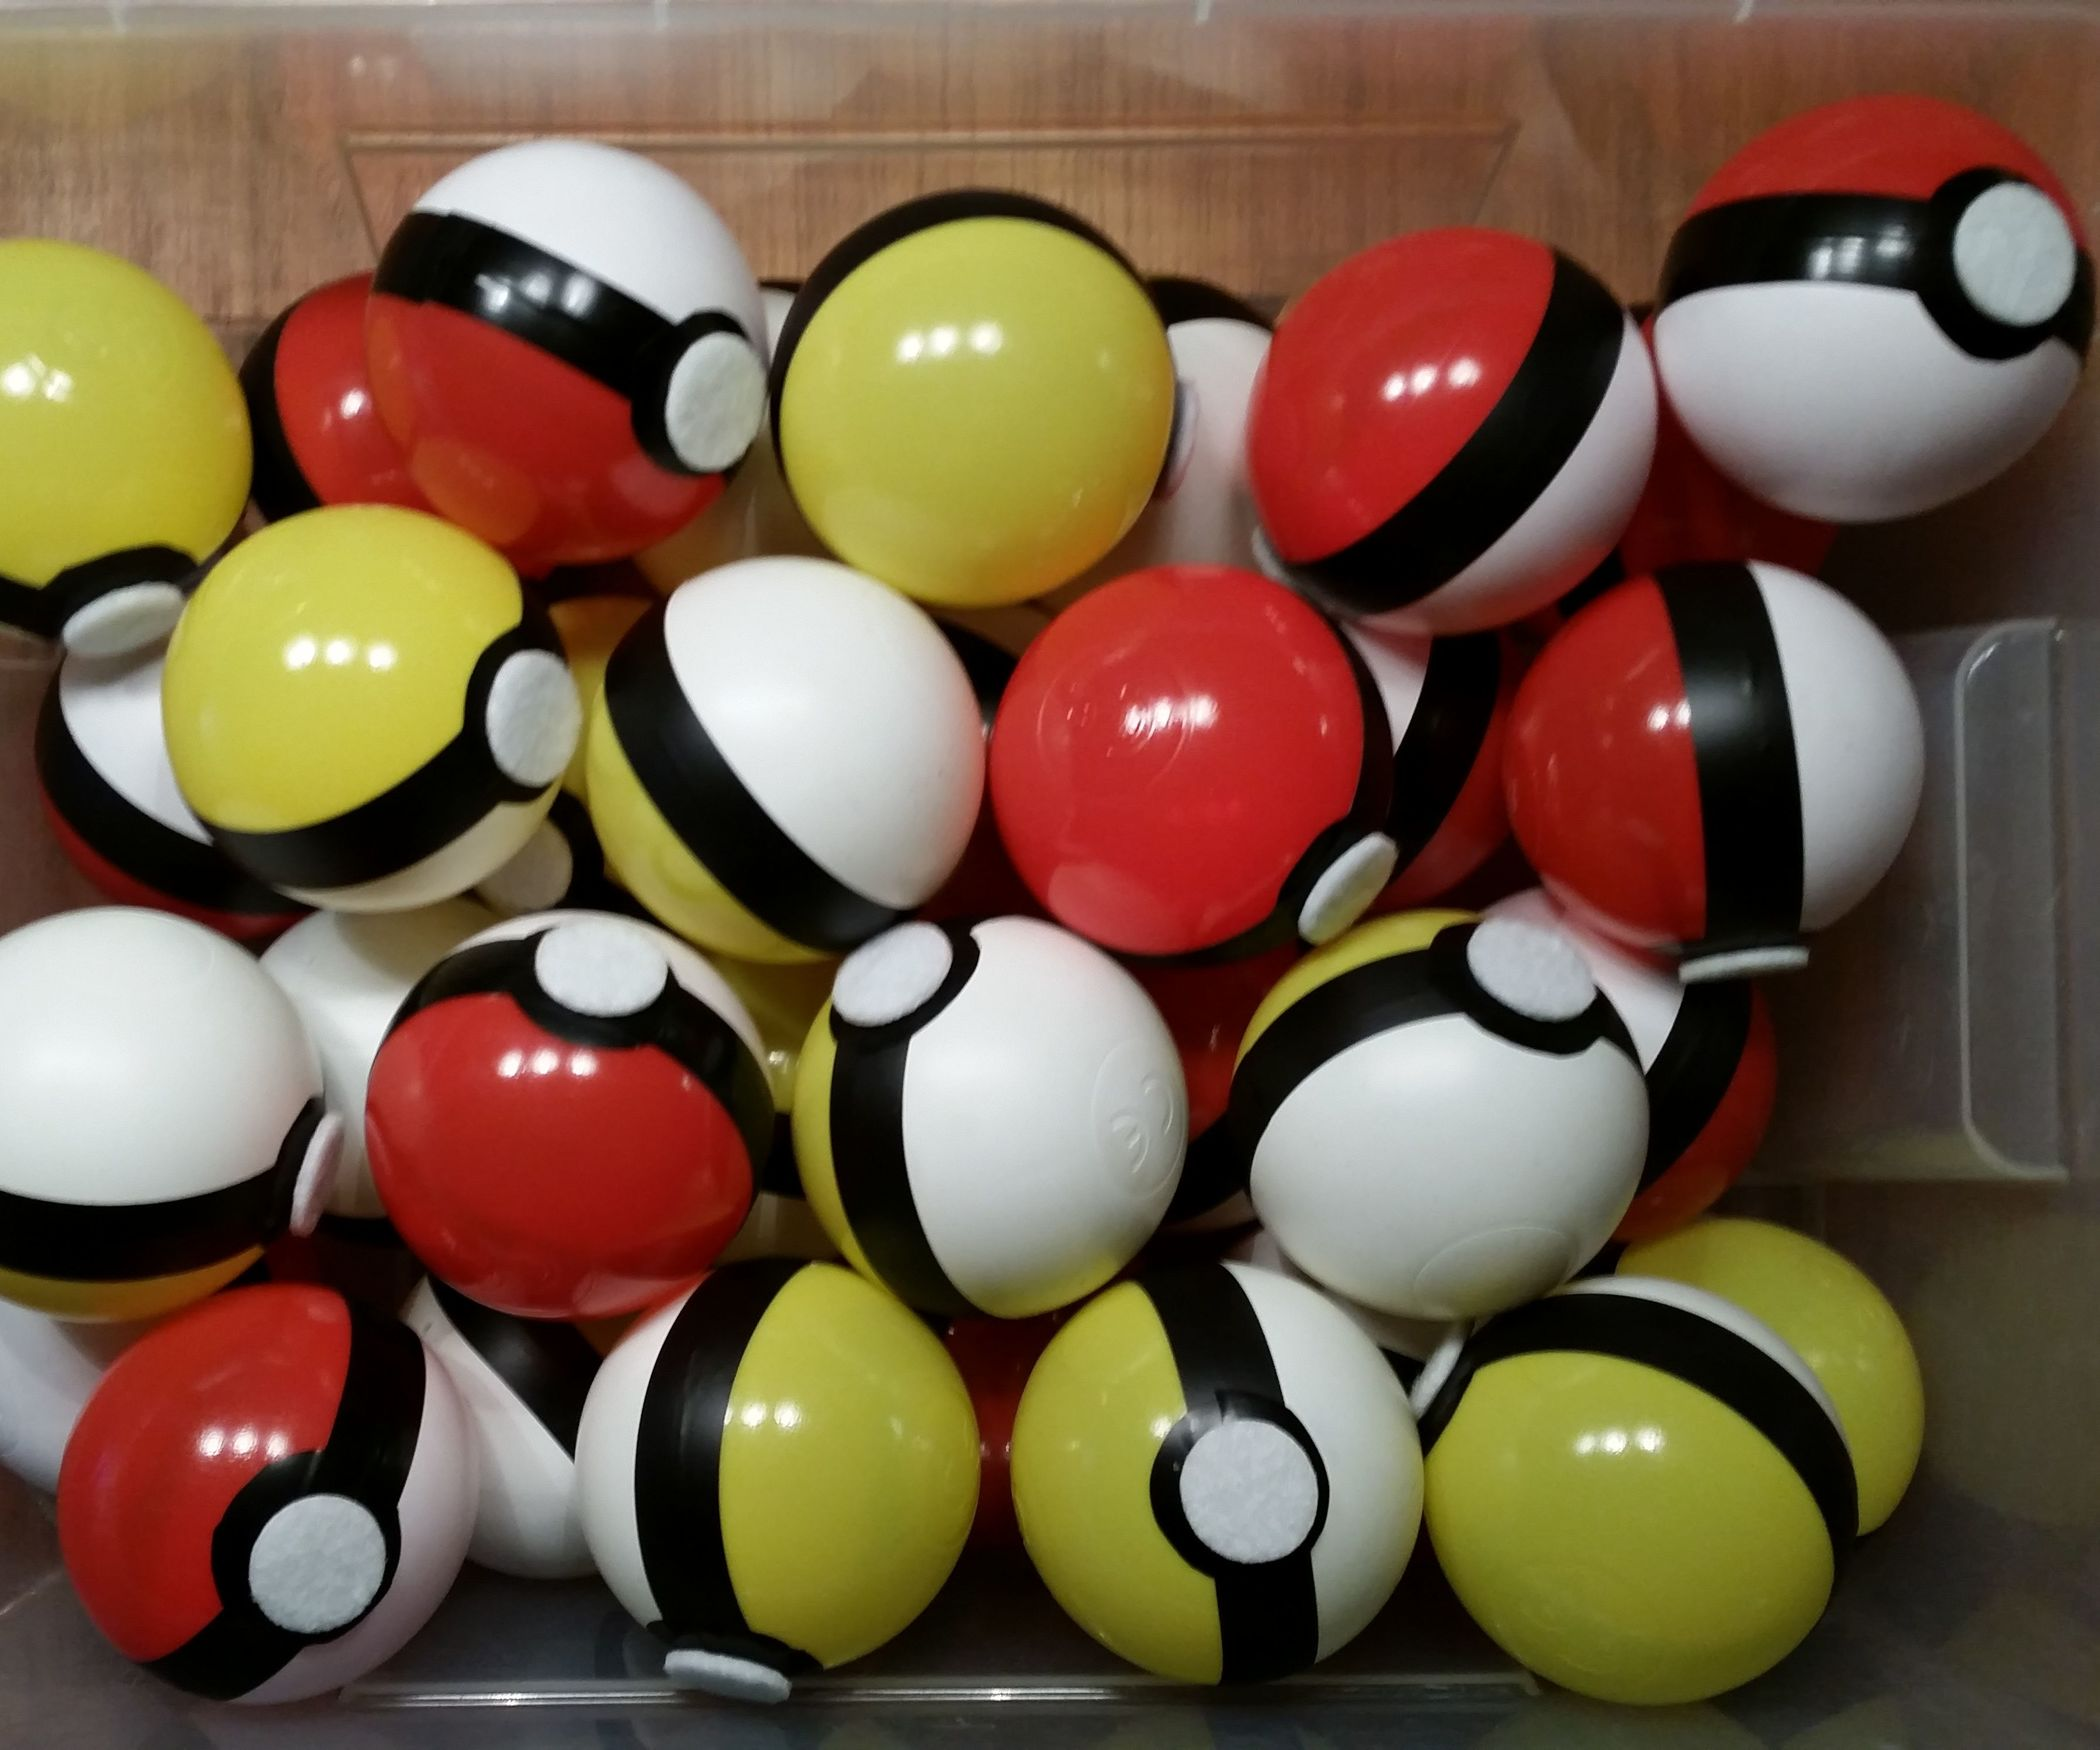 Drawn pokeball soccer goal post Children's Pictures)  for Party: